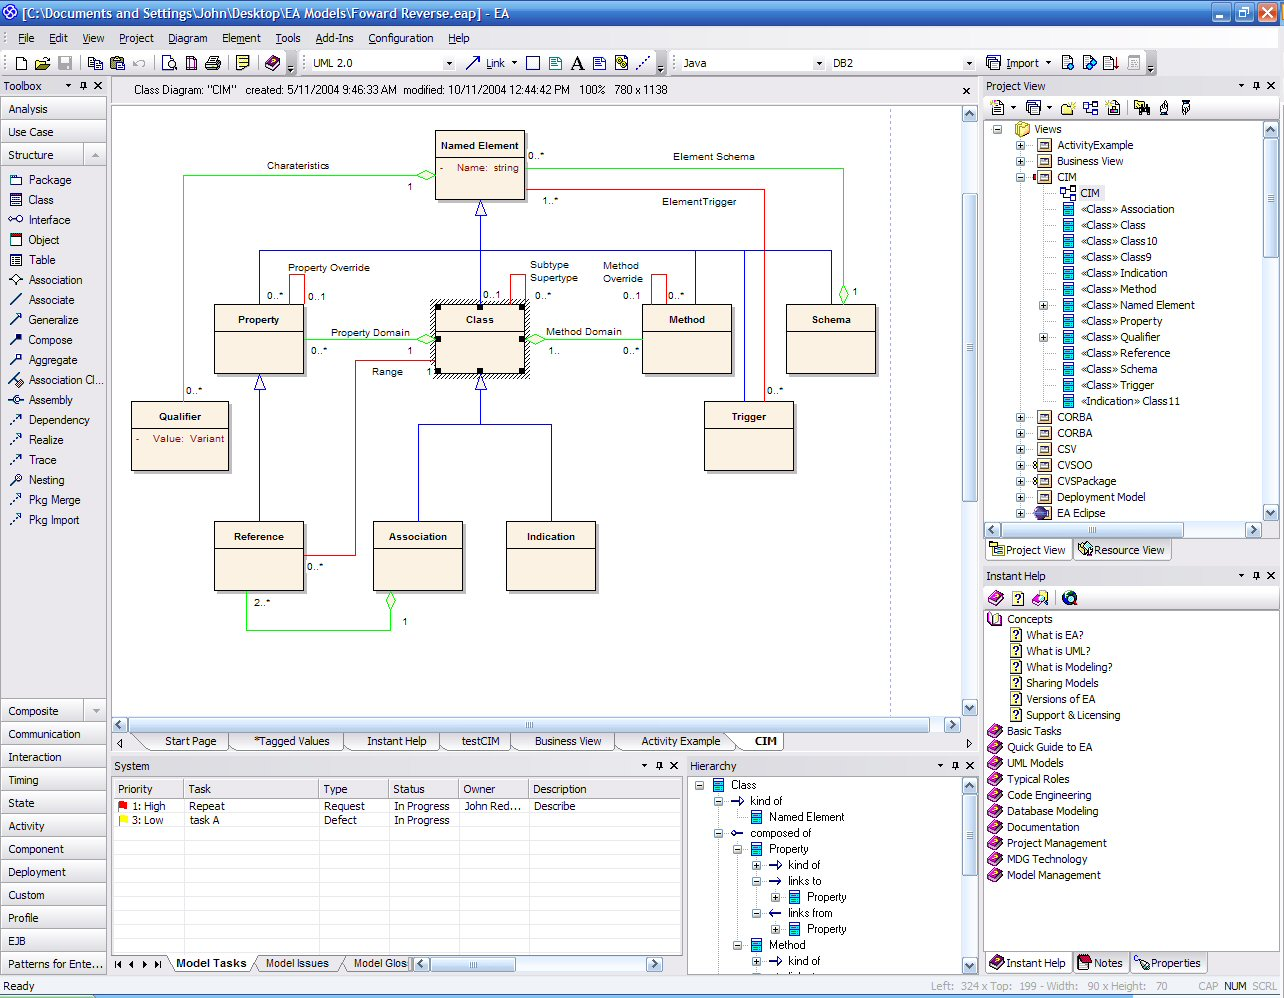 sparx enterprise architect diagram kicker hideaway wiring  uml design tool federico cargnelutti